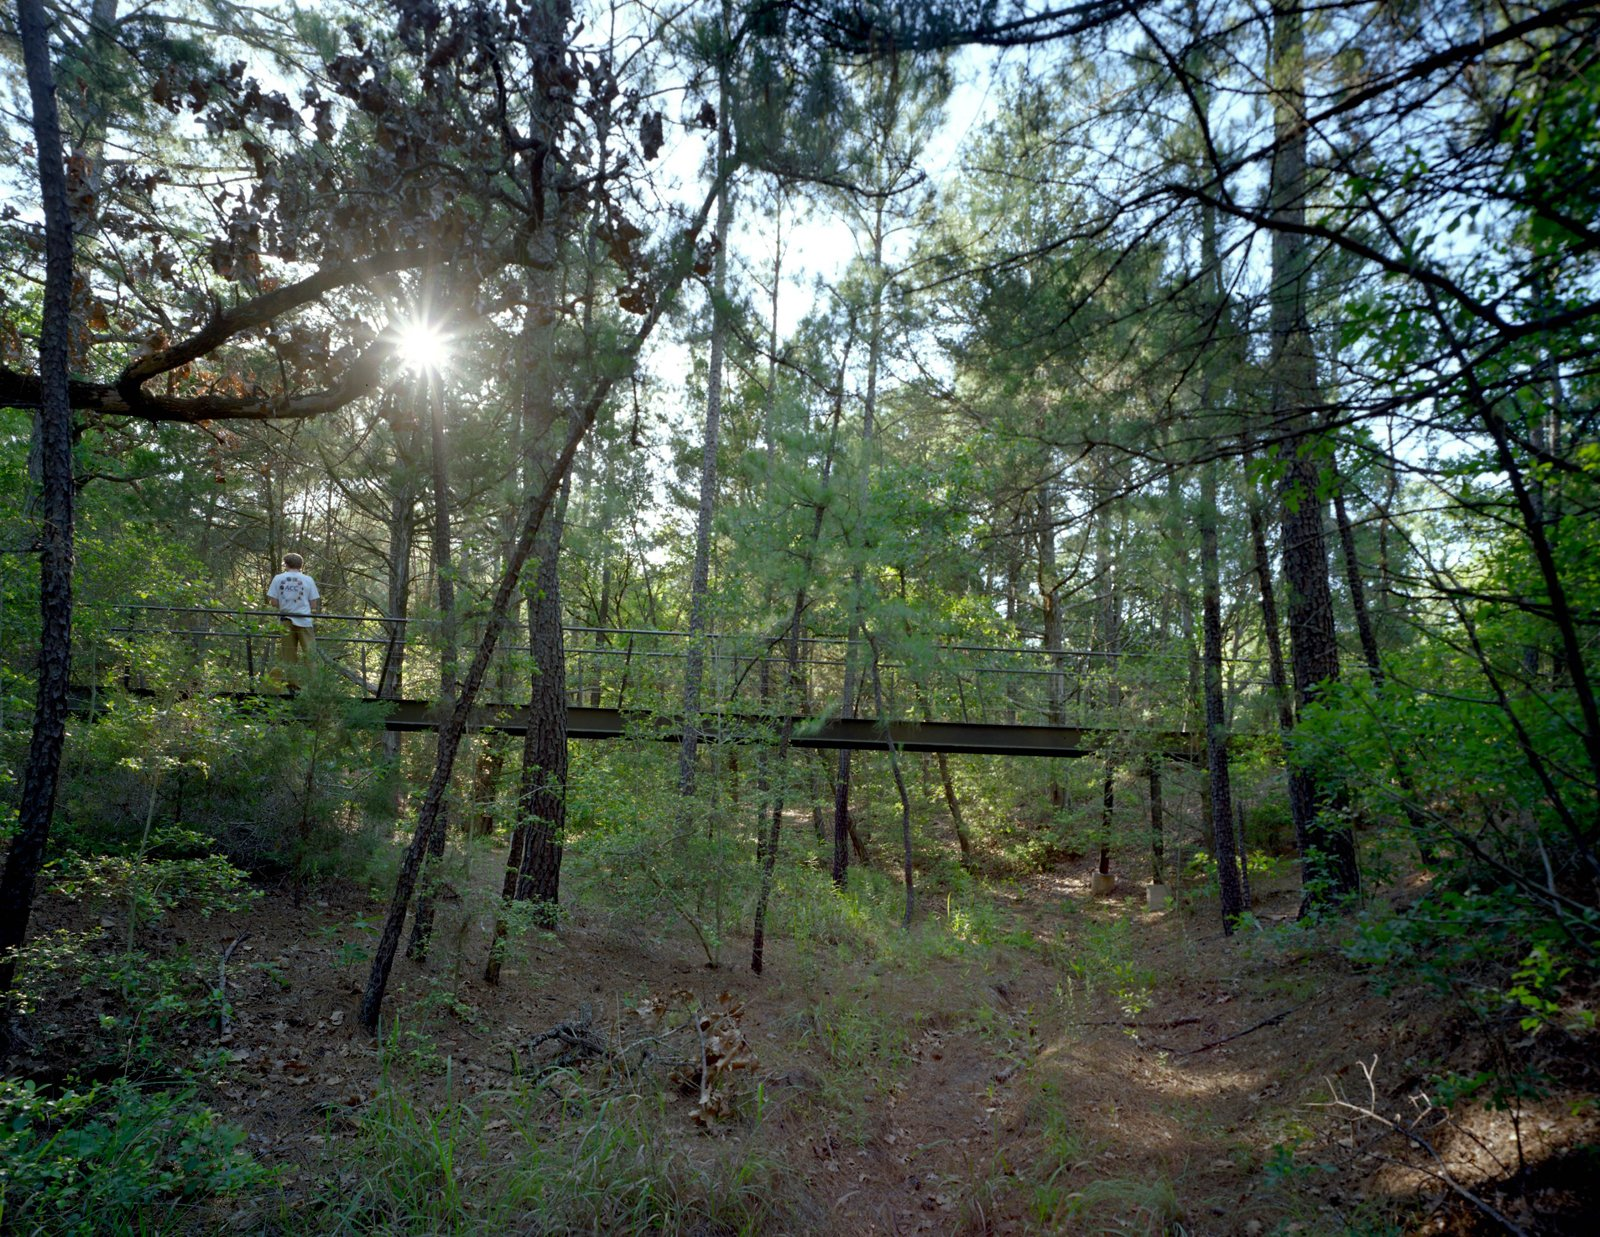 Near the bunkhouse, Panton built a wood-and-steel footbridge spanning 90 feet across another dry creek leading to the path to a swimming pool and outdoor bathhouse.  Texas Bunkhouse by Erika Heet